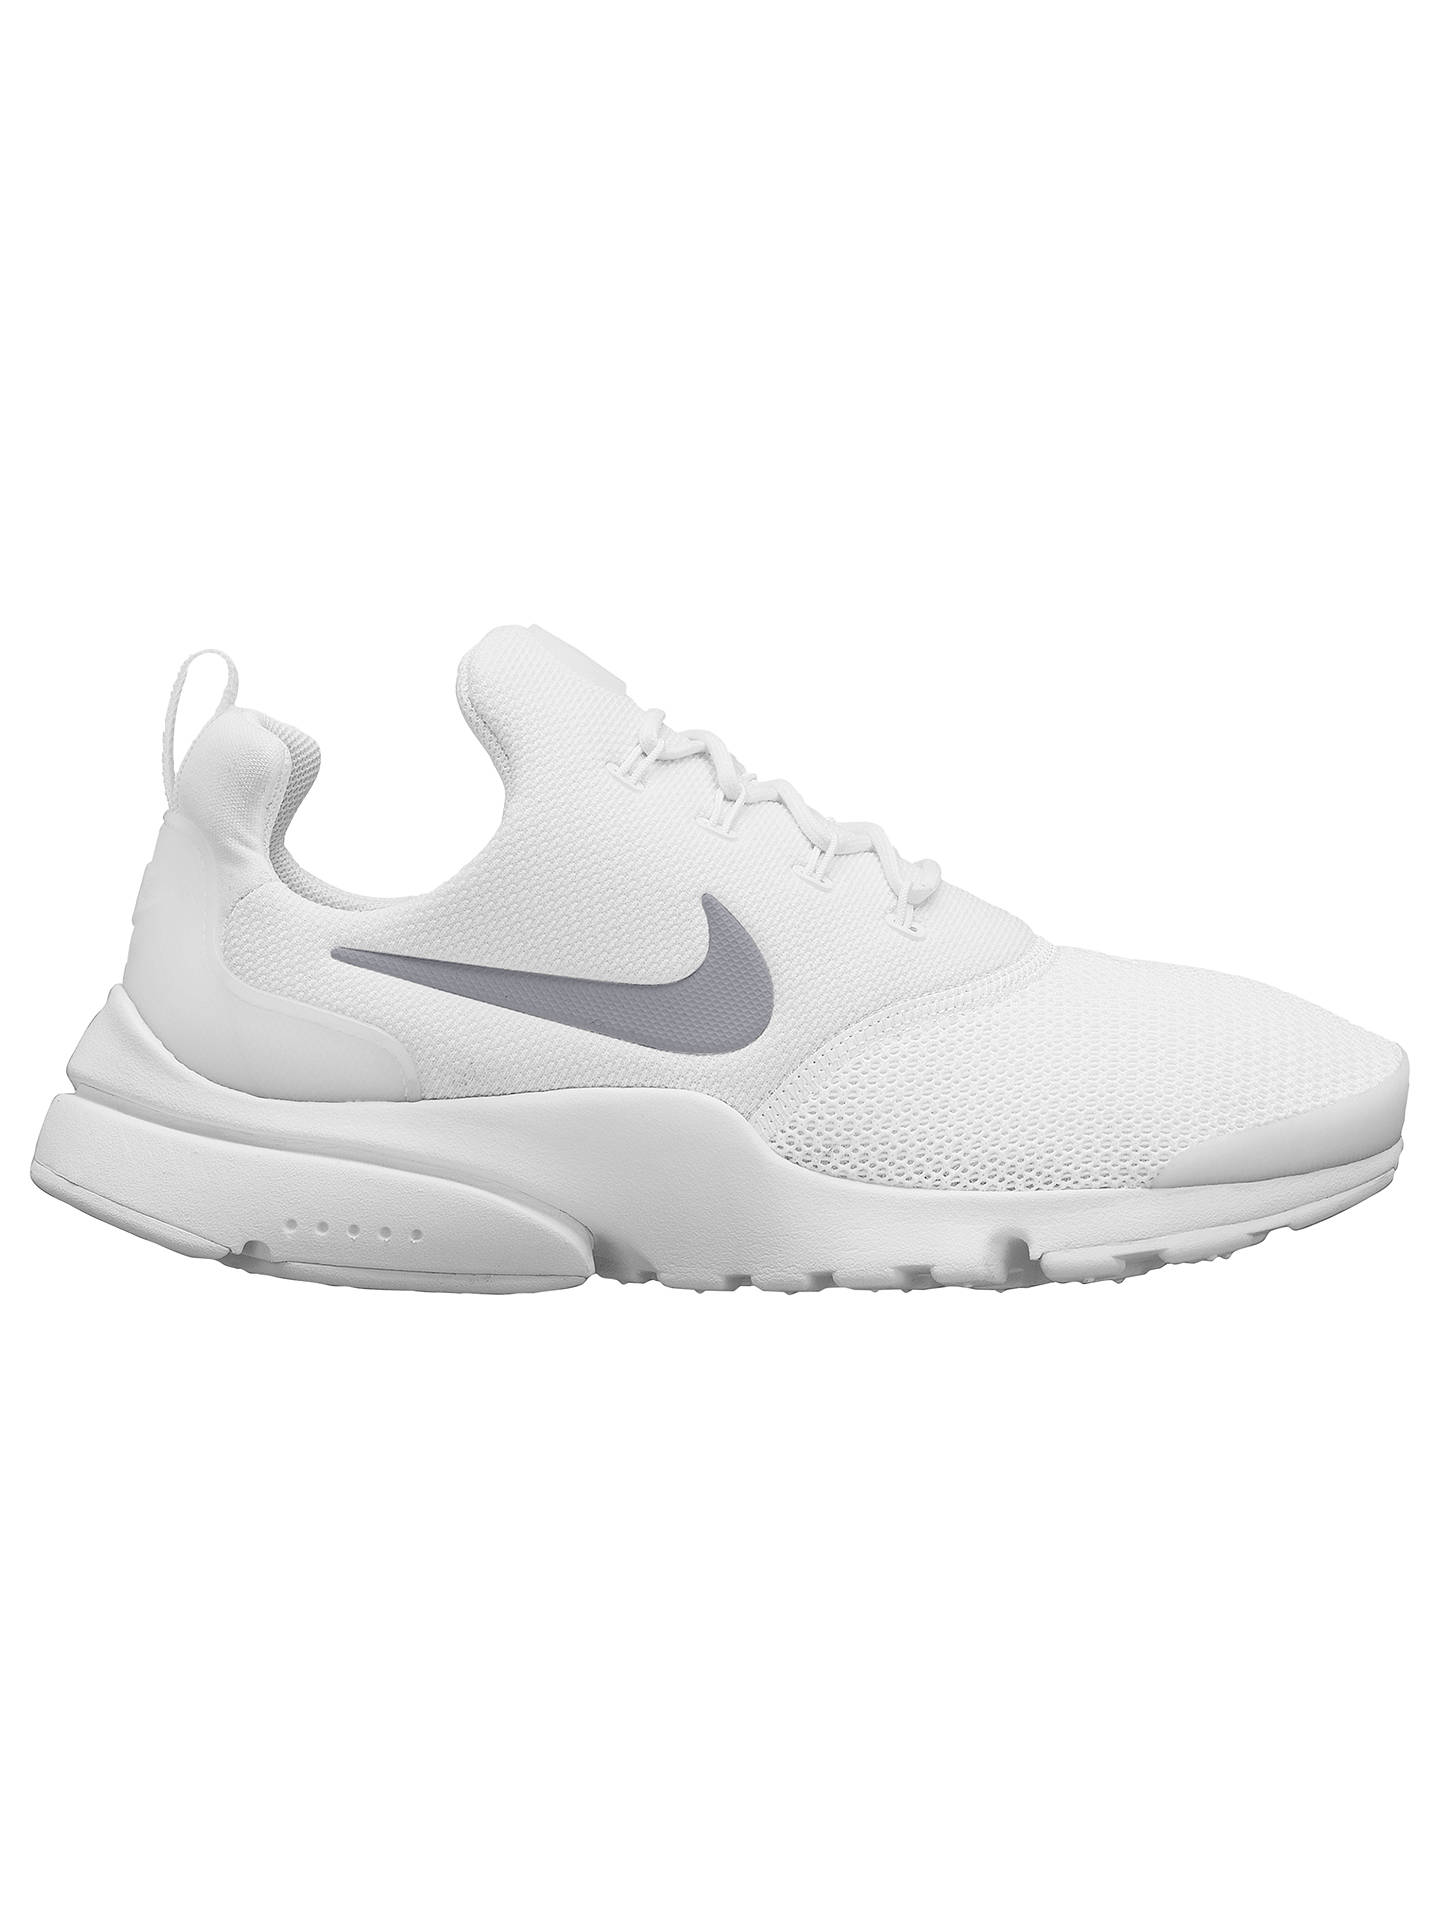 b512d720d799 Nike Presto Fly Women s Trainers at John Lewis   Partners